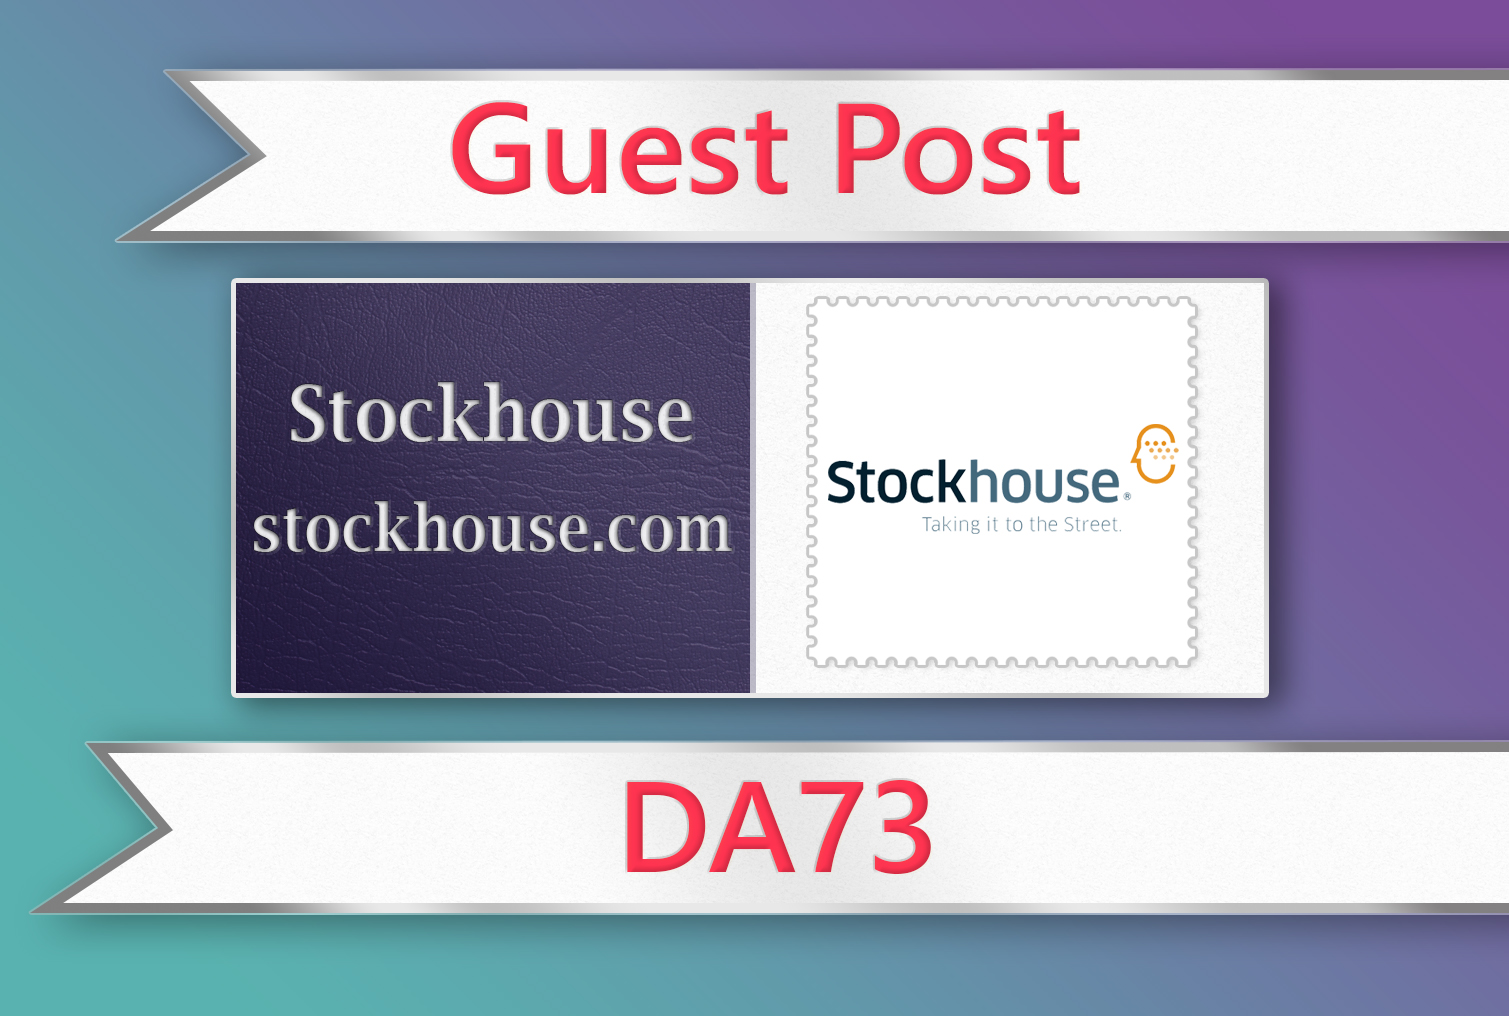 Guest post on Stockhouse - DA73